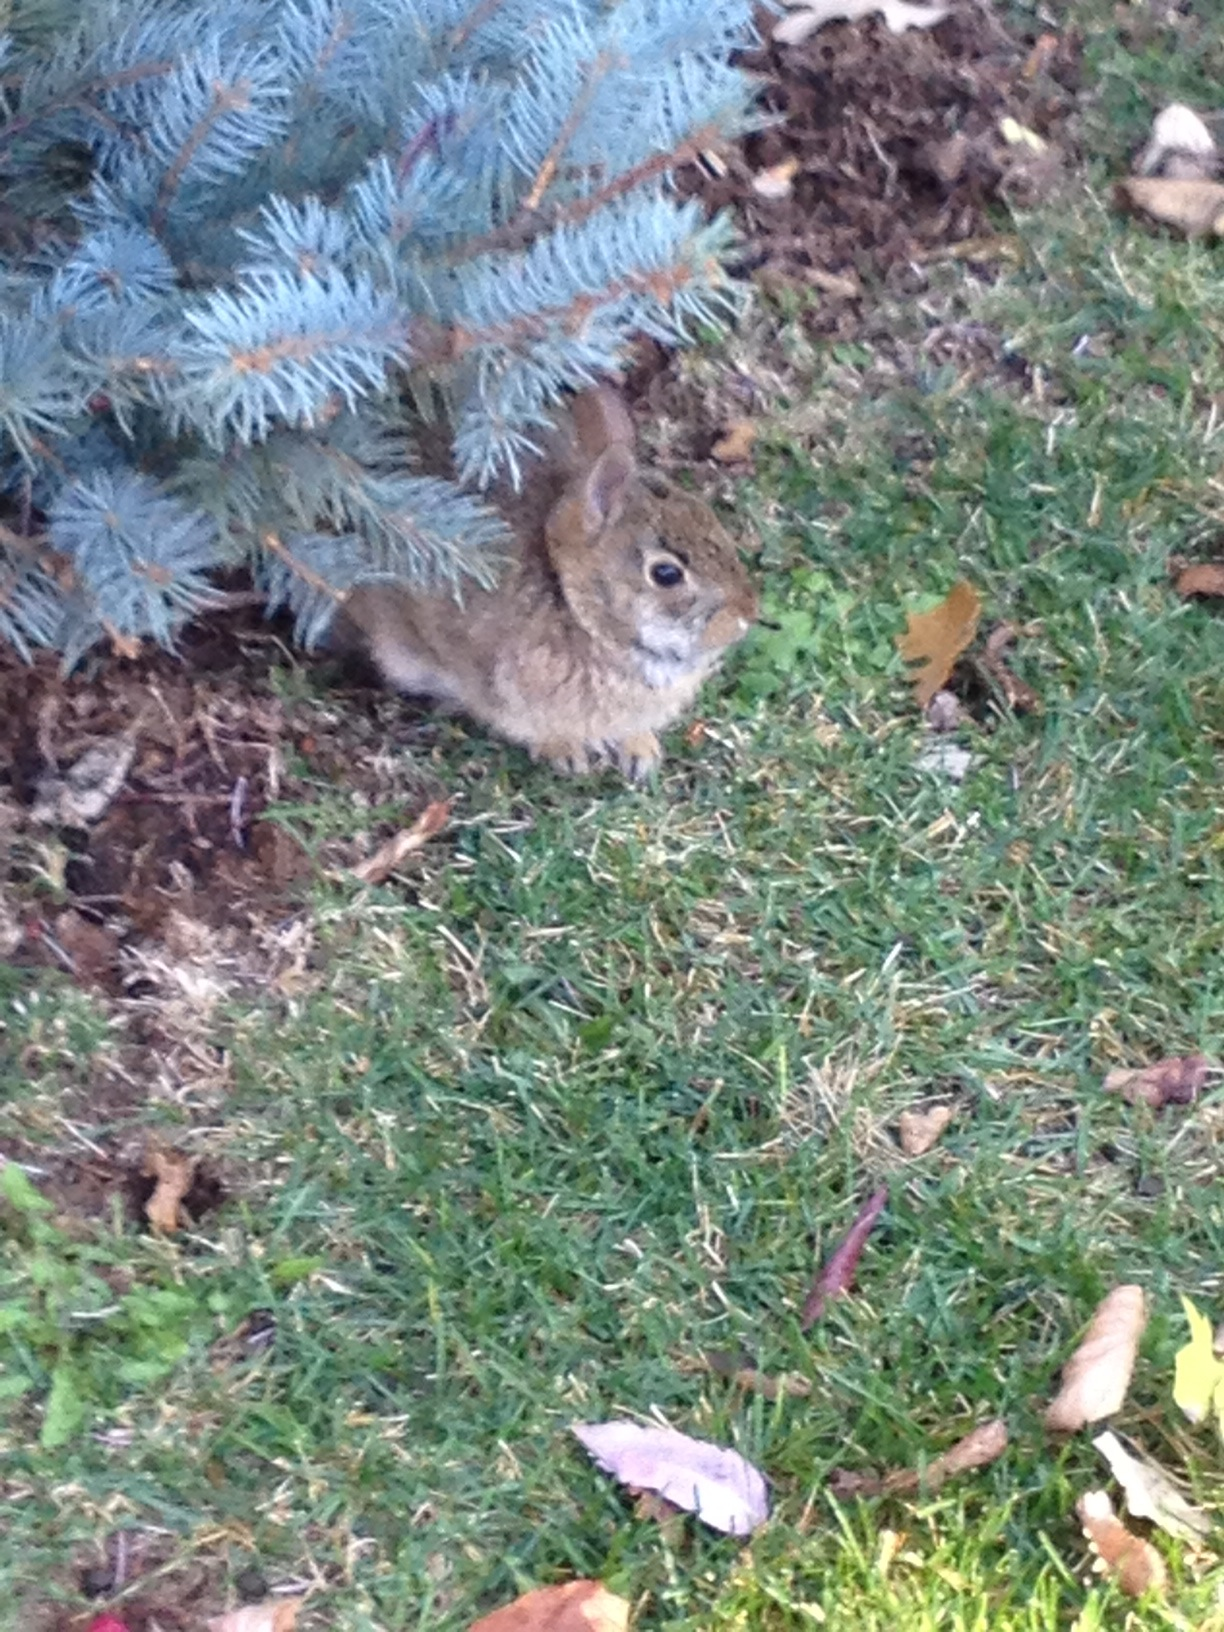 Tiny Wild Bunny Peeks Out from the Flowerbed and Nibbles on the Grass 1